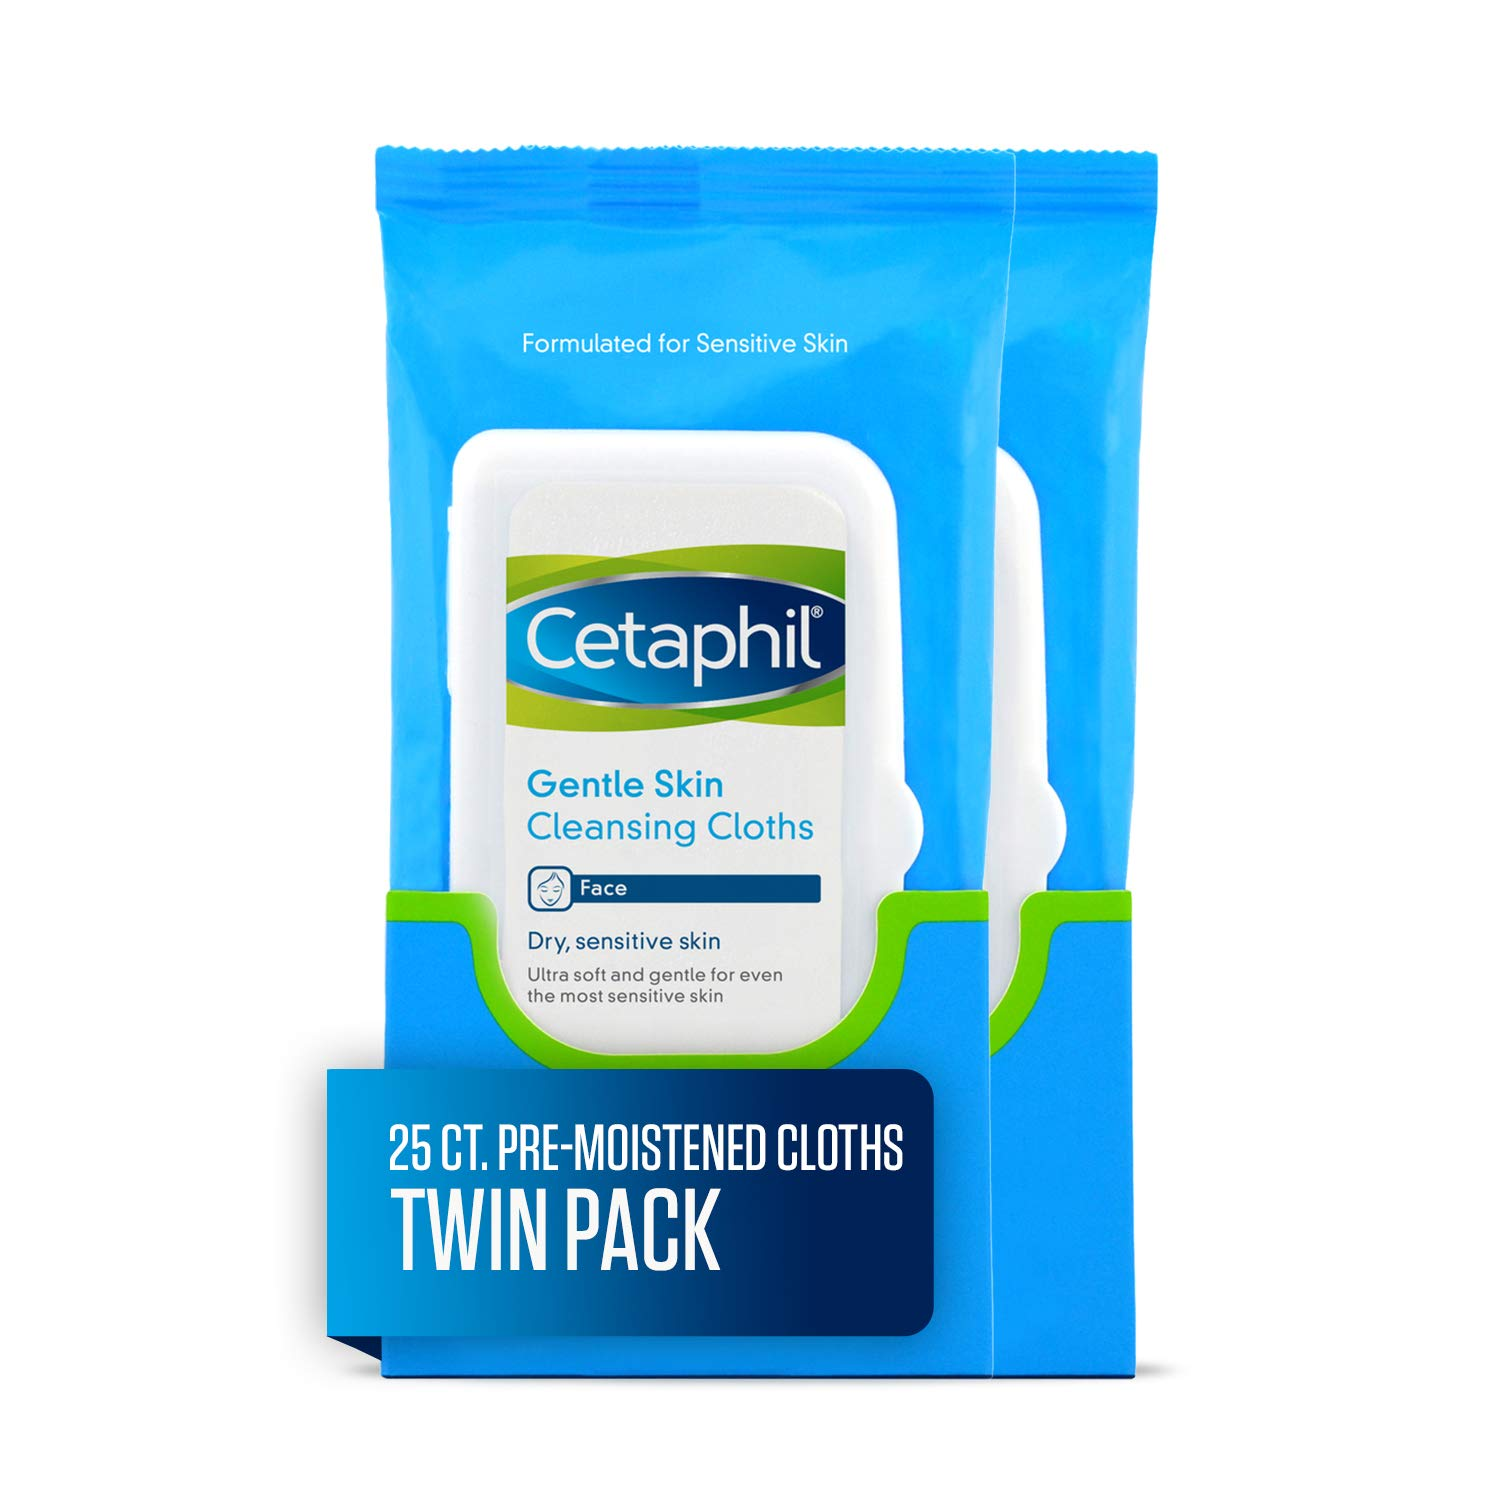 Cetaphil Gentle Skin Cleansing Cloths, 25 Count (Pack of 2) by Cetaphil